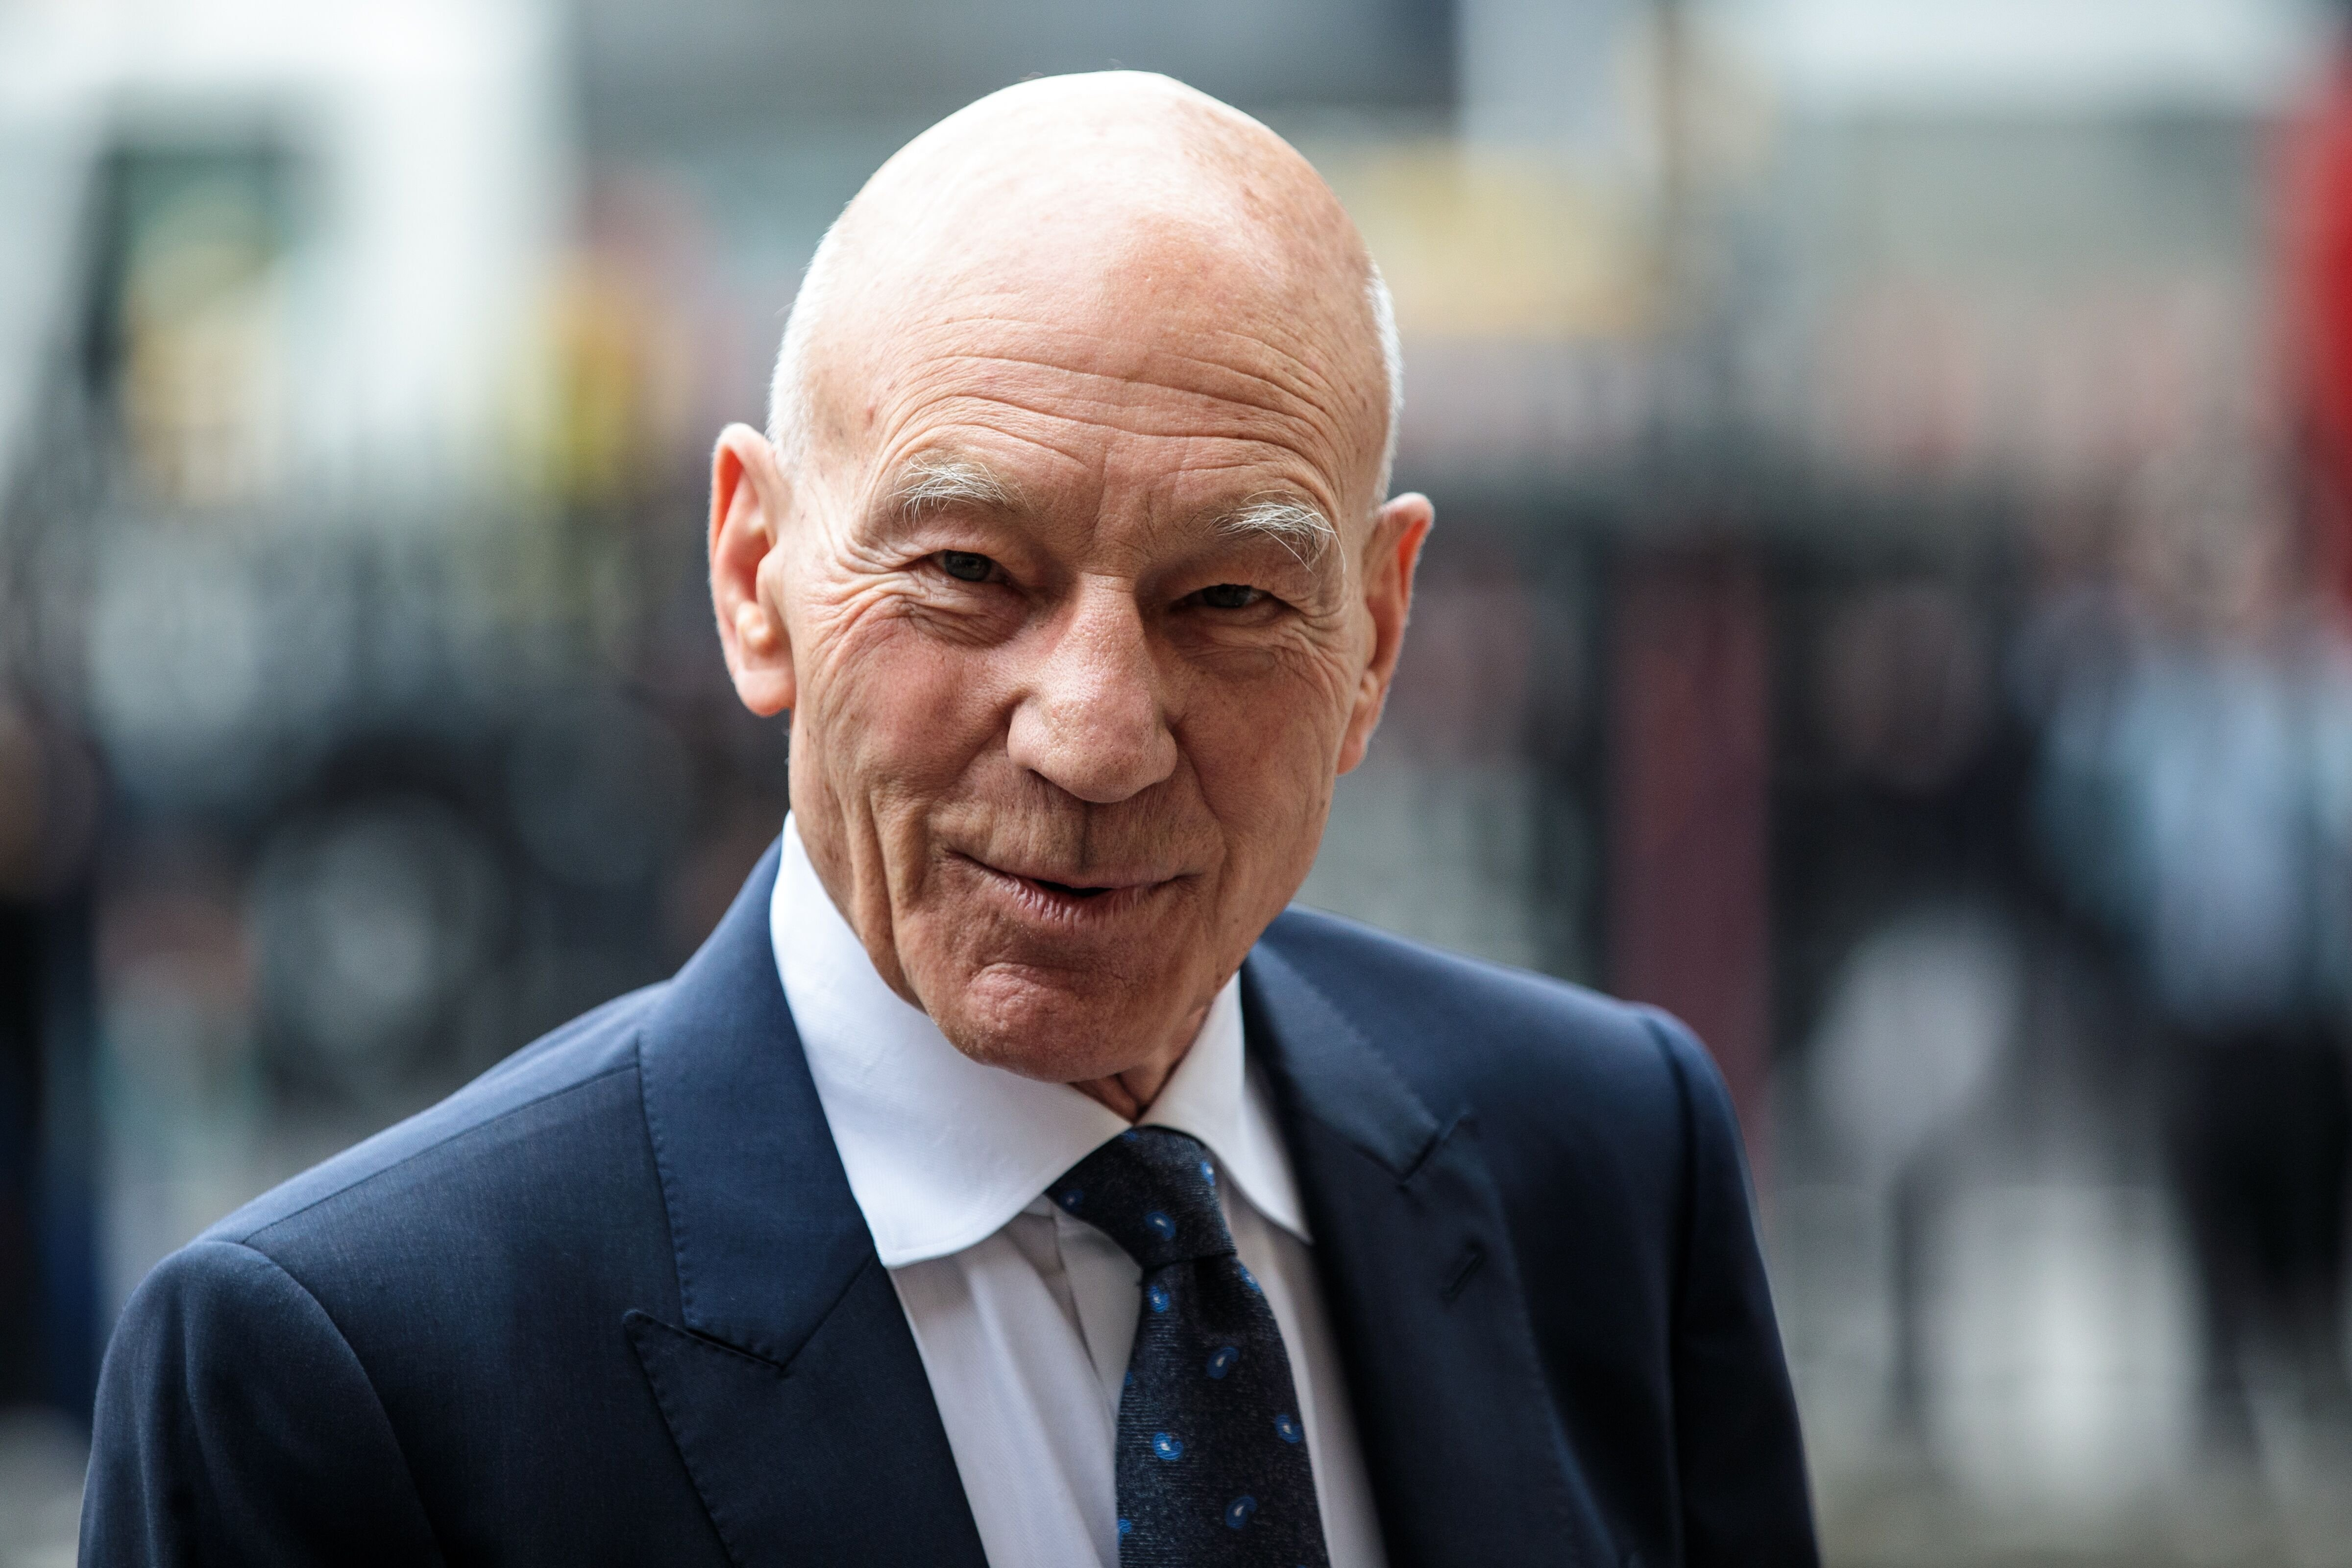 Patrick Stewart at Westminster Abbey for a memorial service for Sir Peter Hall OBE on September 11, 2018, in London, England | Photo: Jack Taylor/Getty Images